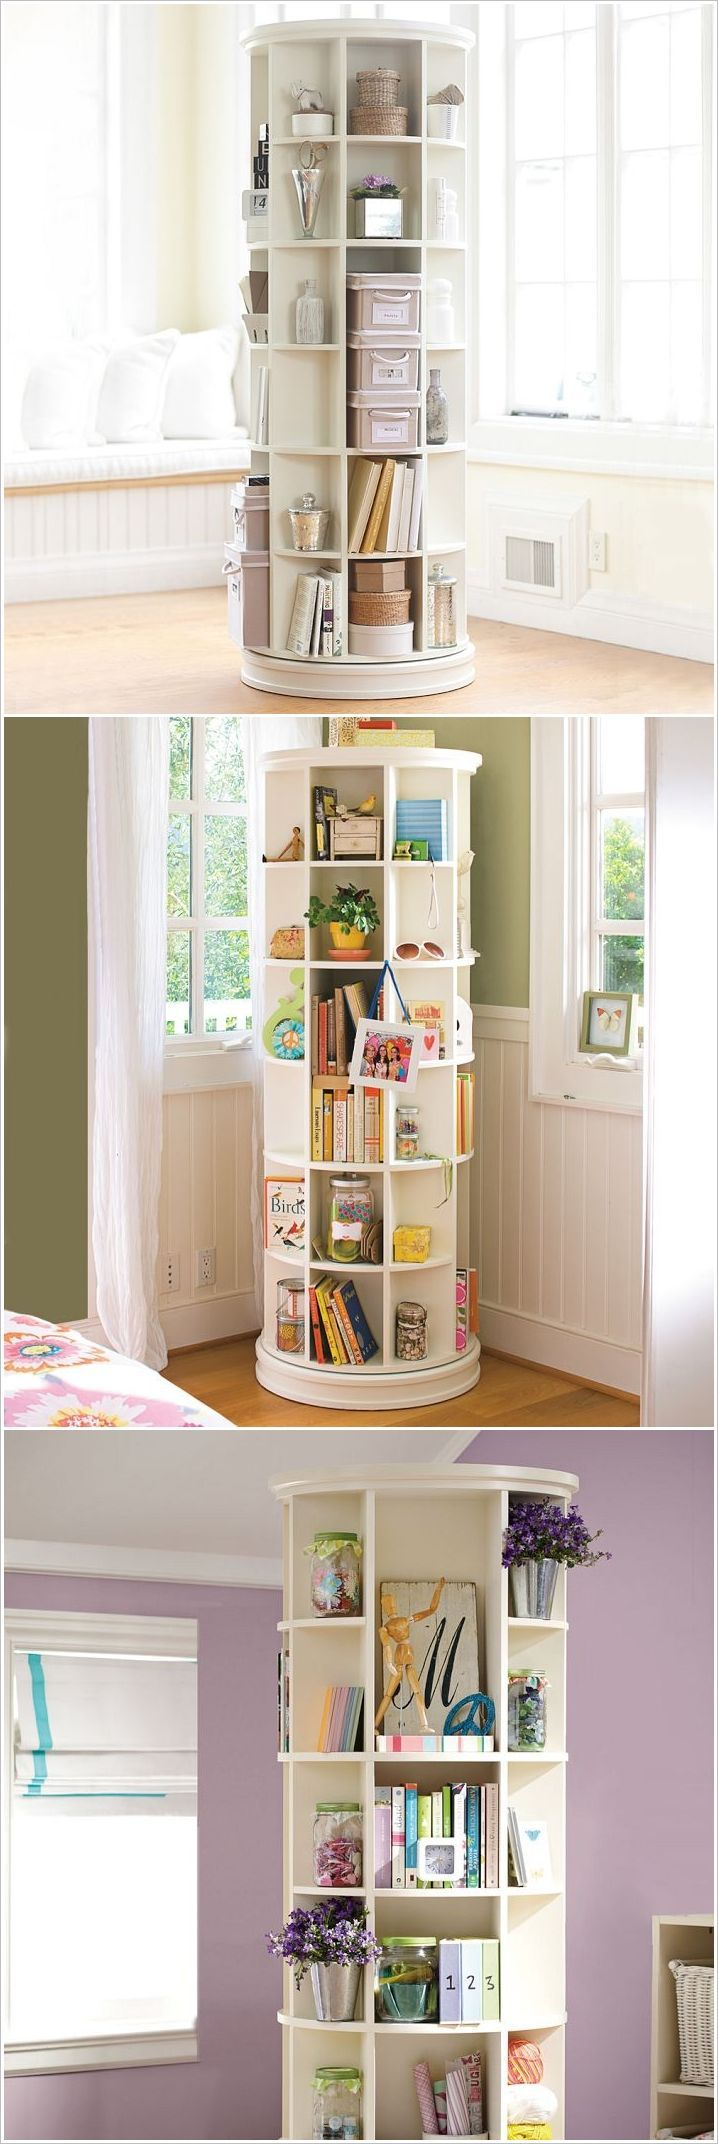 10 Clever Solutions for Small Space Teen Bedrooms   Clever storage ...